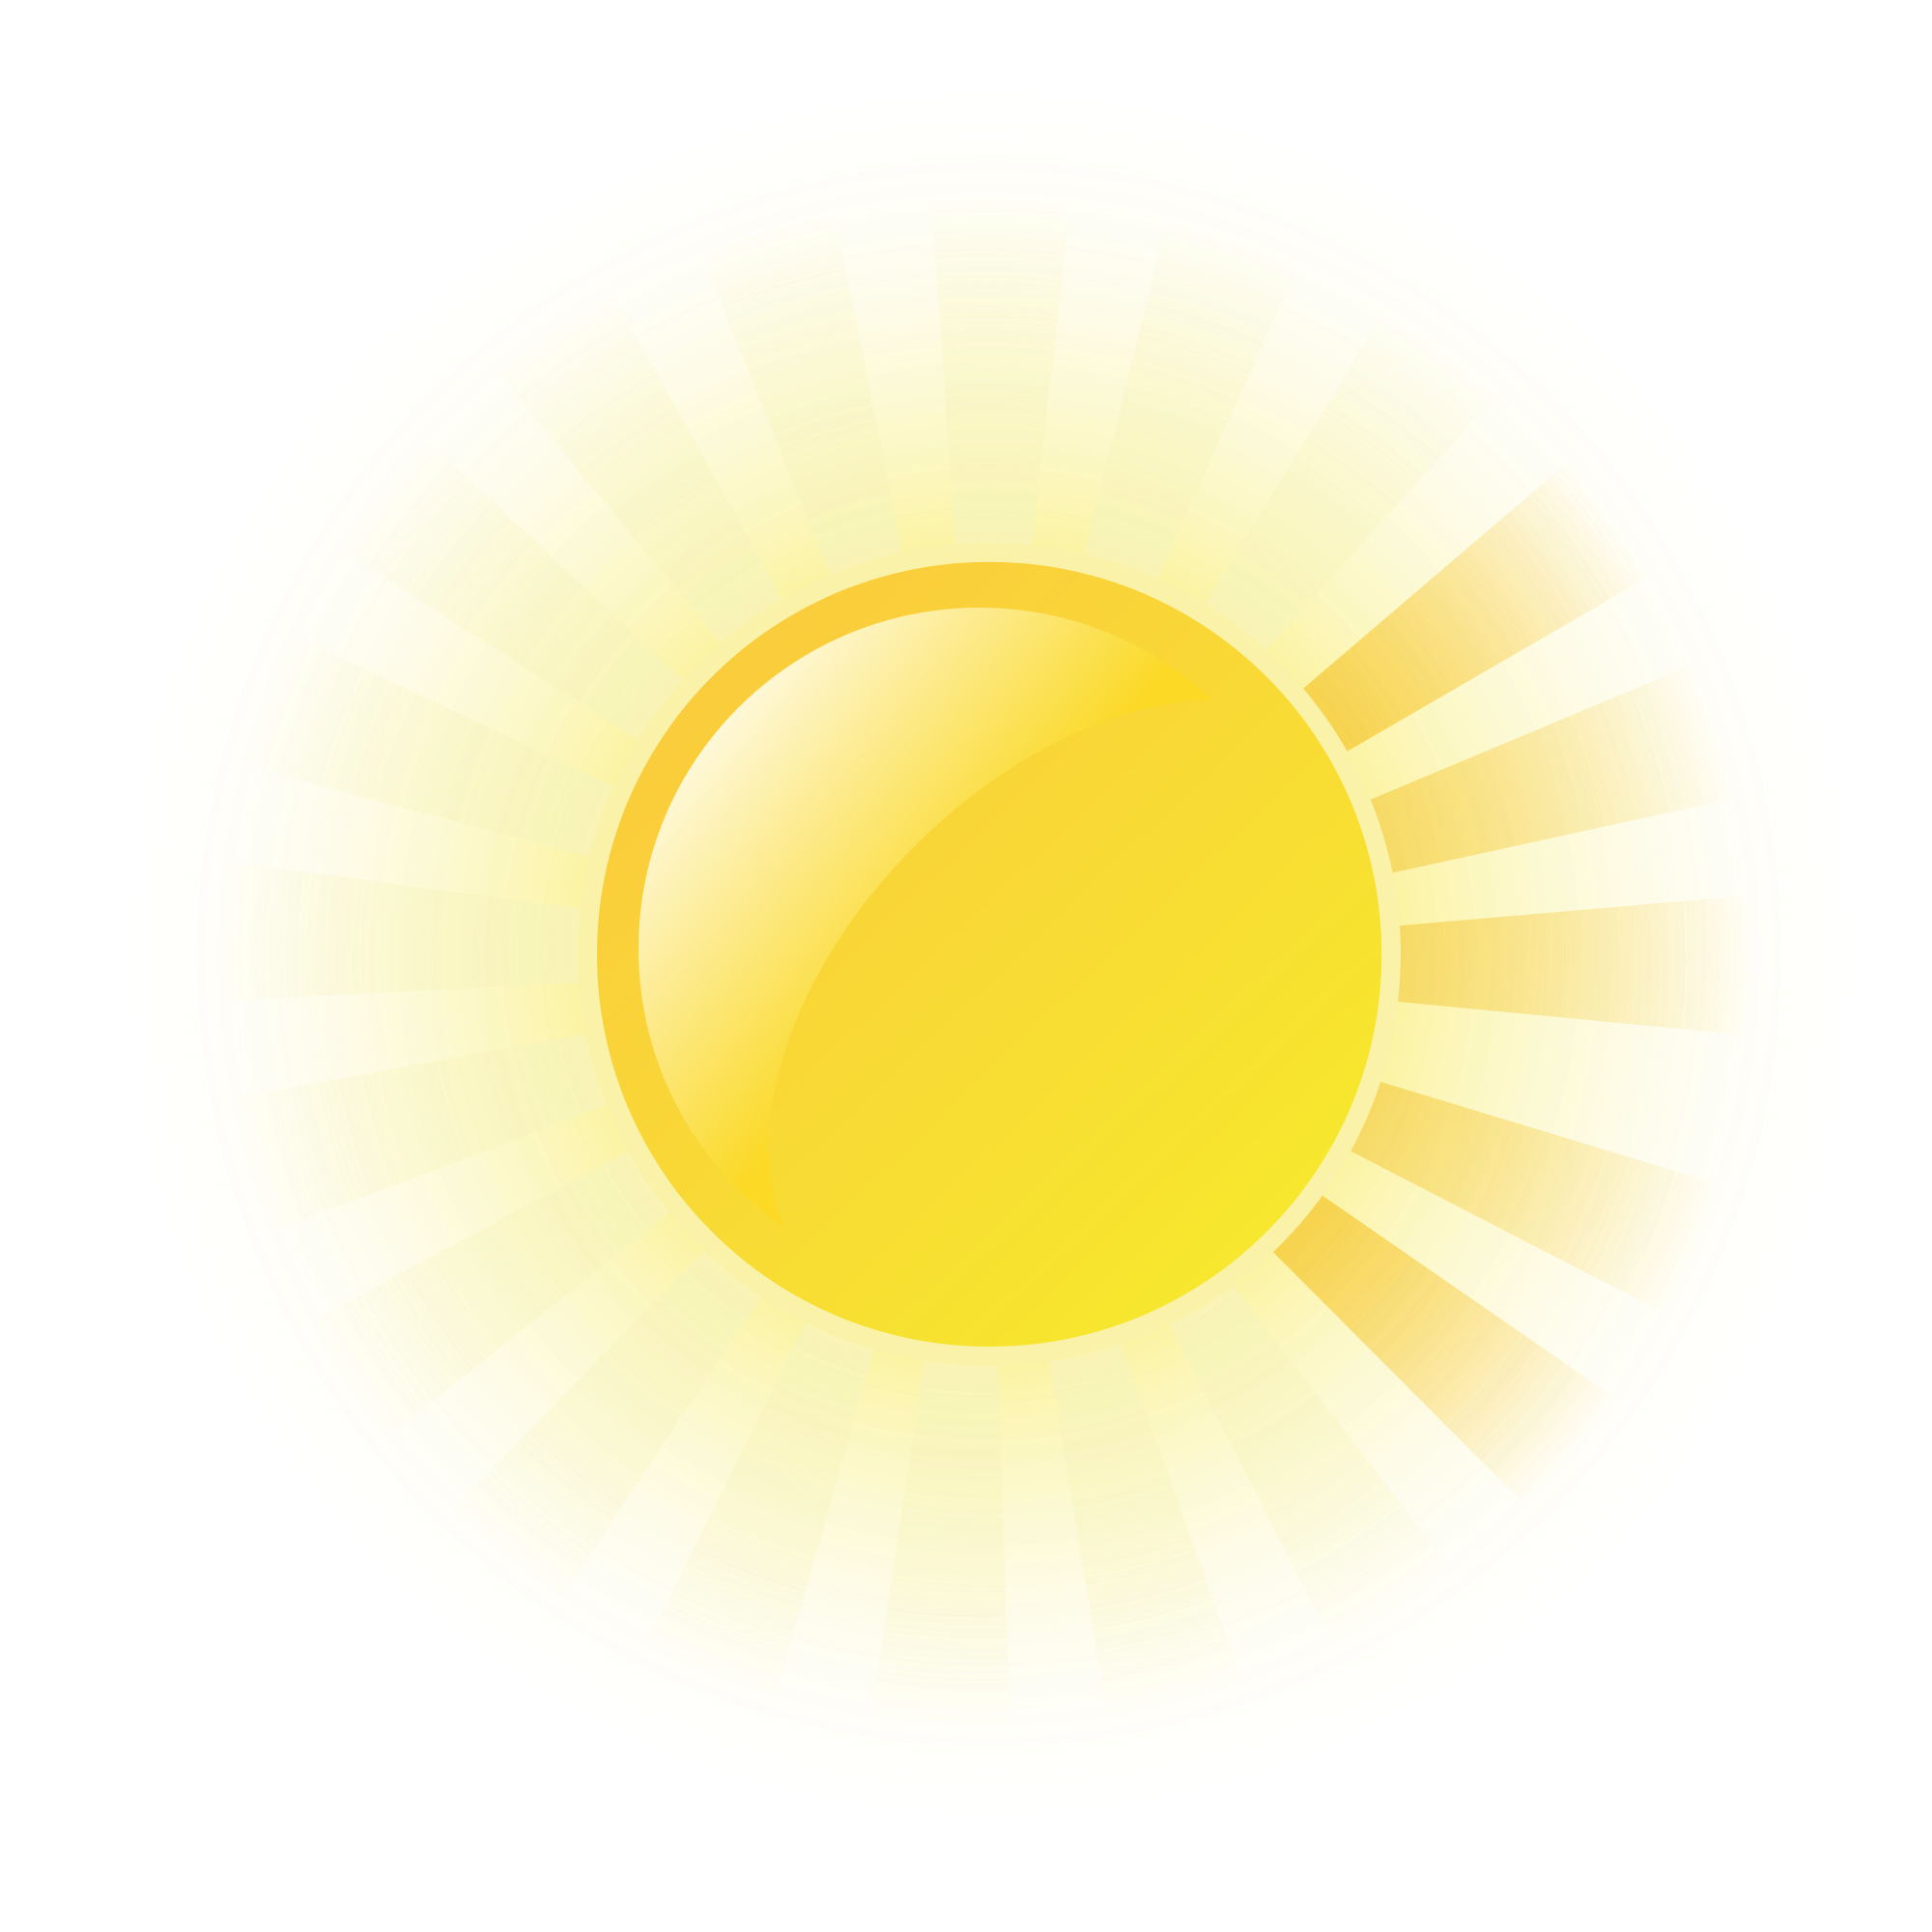 Geometric sun png. Graphic group filesunsvg wikimedia